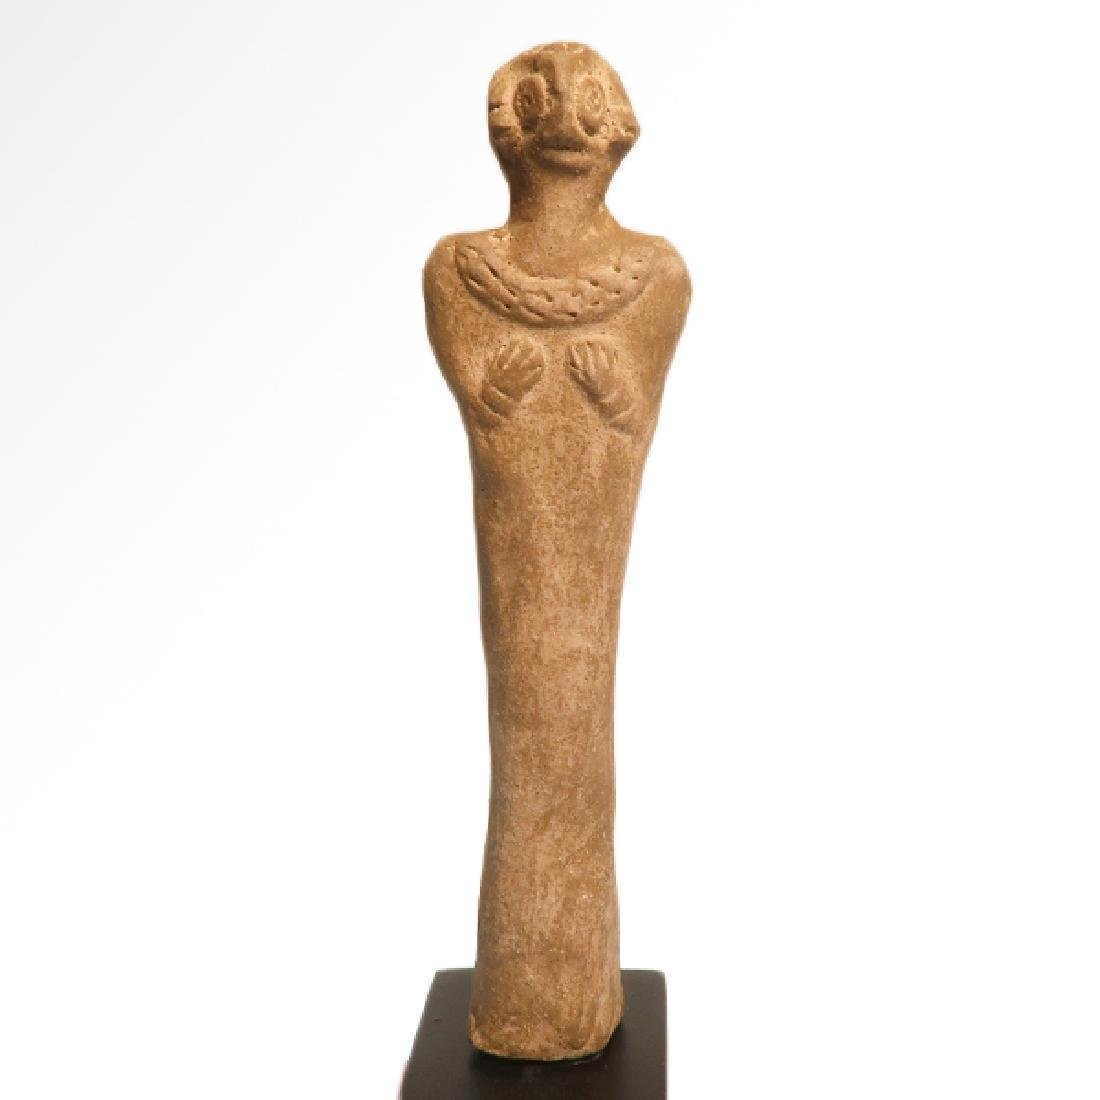 Syro-Hittite Terracotta Mother Goddess, c. 1700 B.C.